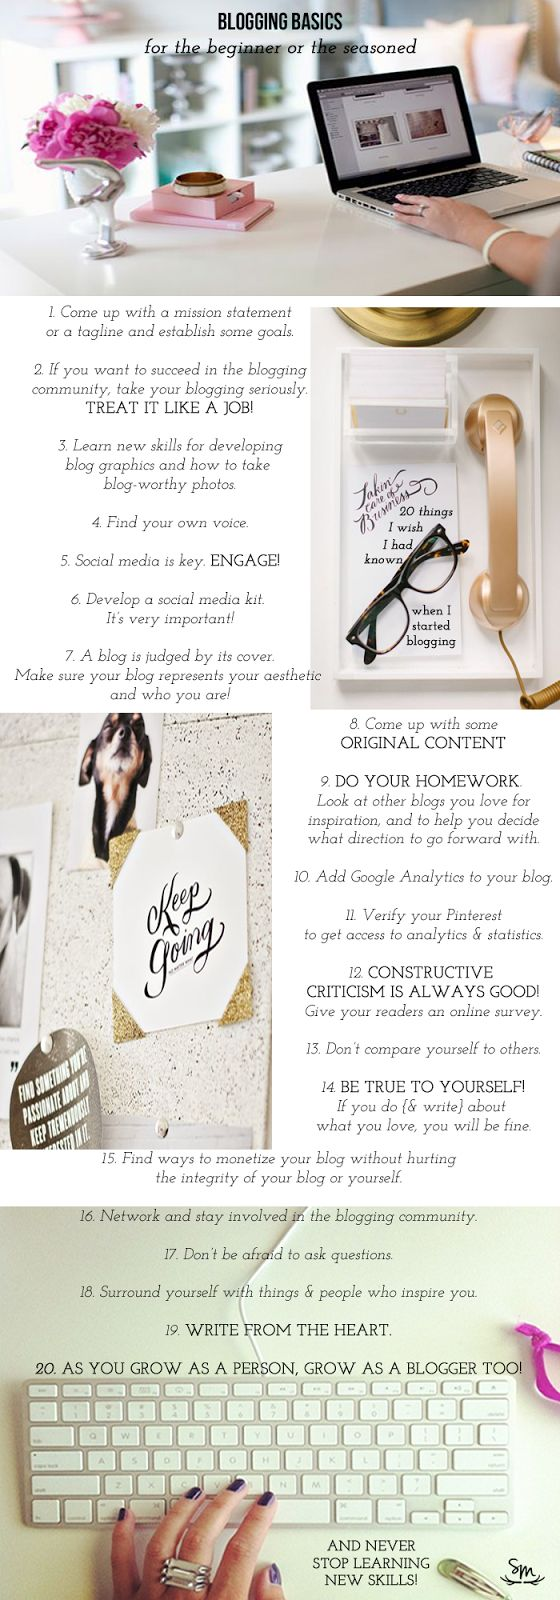 Blogging Basics: 20 Things I Wish I Had Known